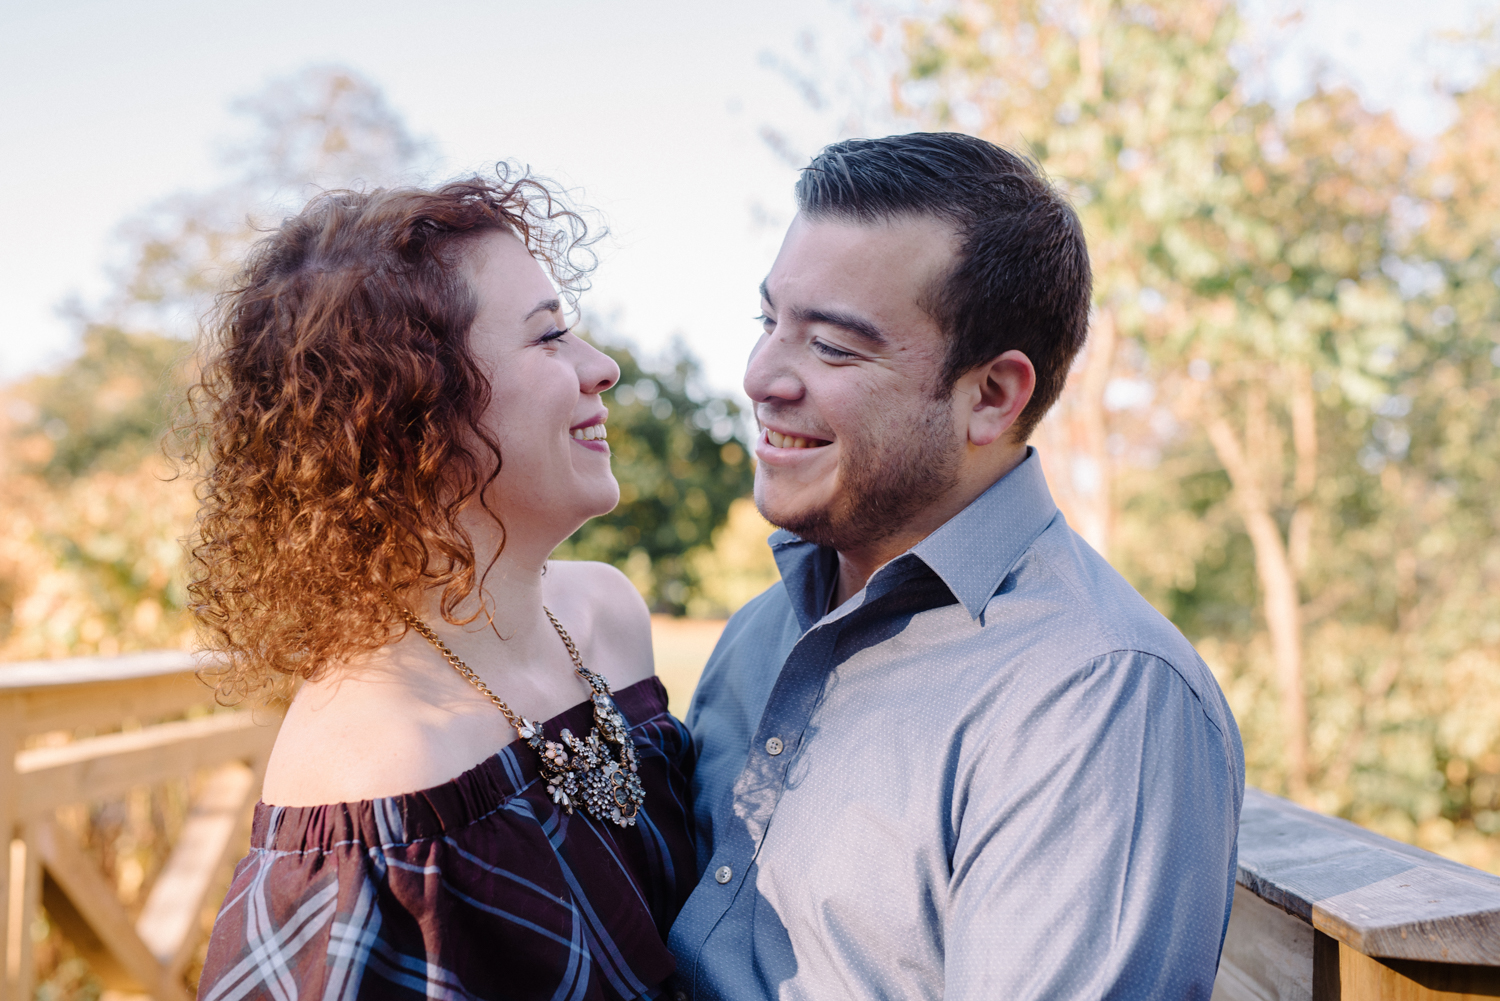 Melissa+Kenny- Watsessing Park Fall Engagement Session- Bloomfield New Jersey- Olivia Christina Photo-25.JPG